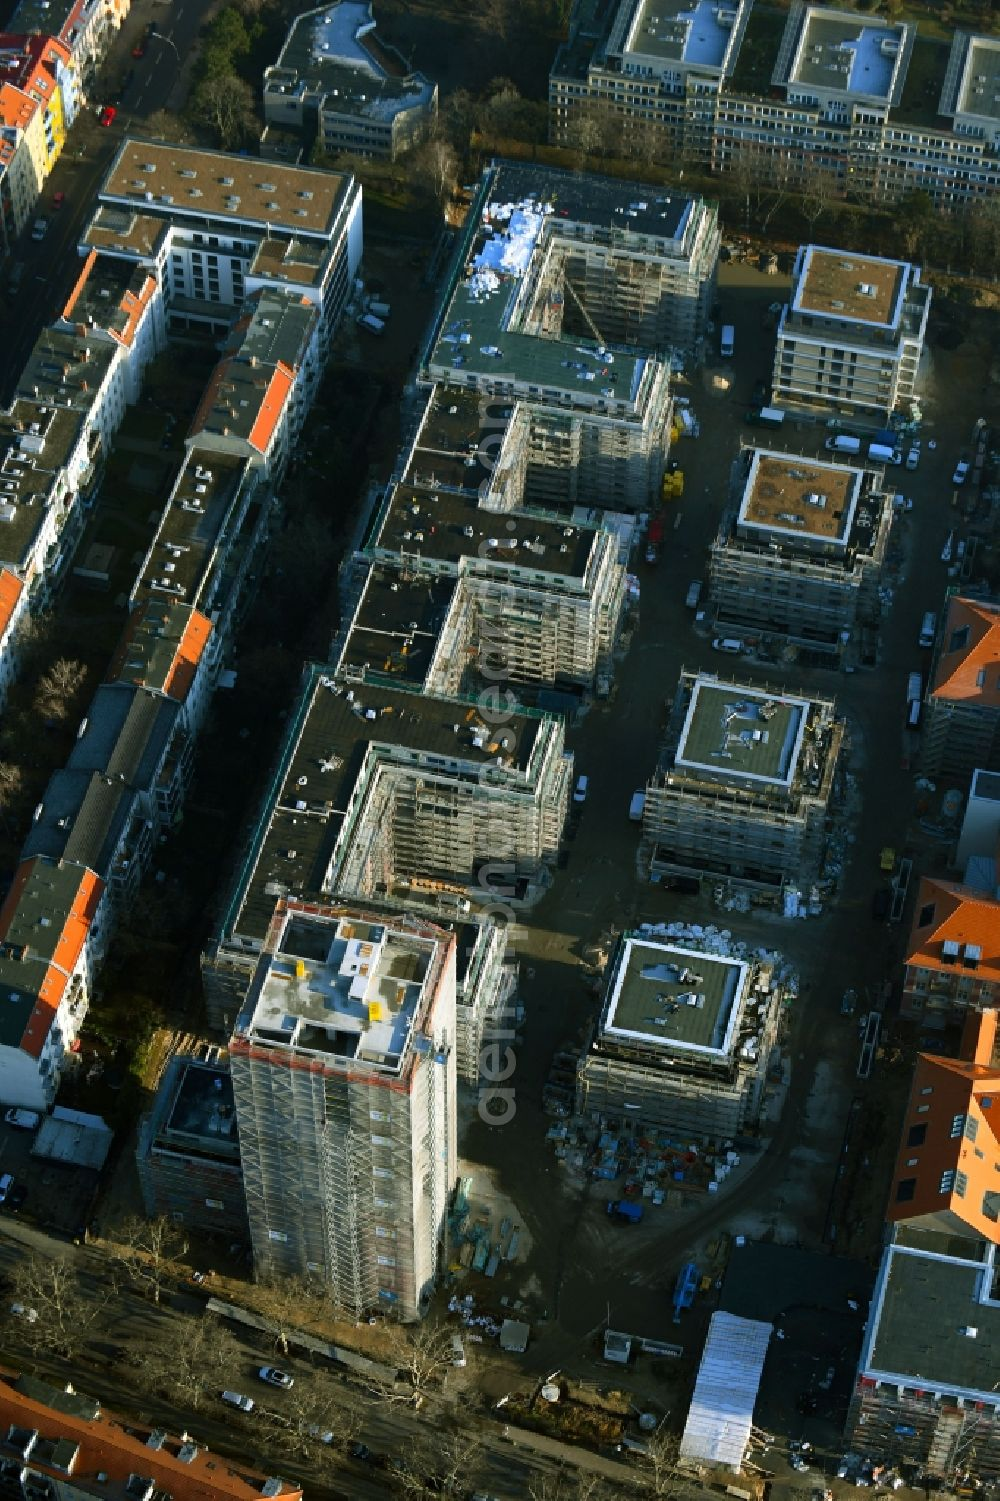 Berlin from above - Construction site for new high-rise building complex am Wohnpark St. Marien in the district Neukoelln in Berlin, Germany